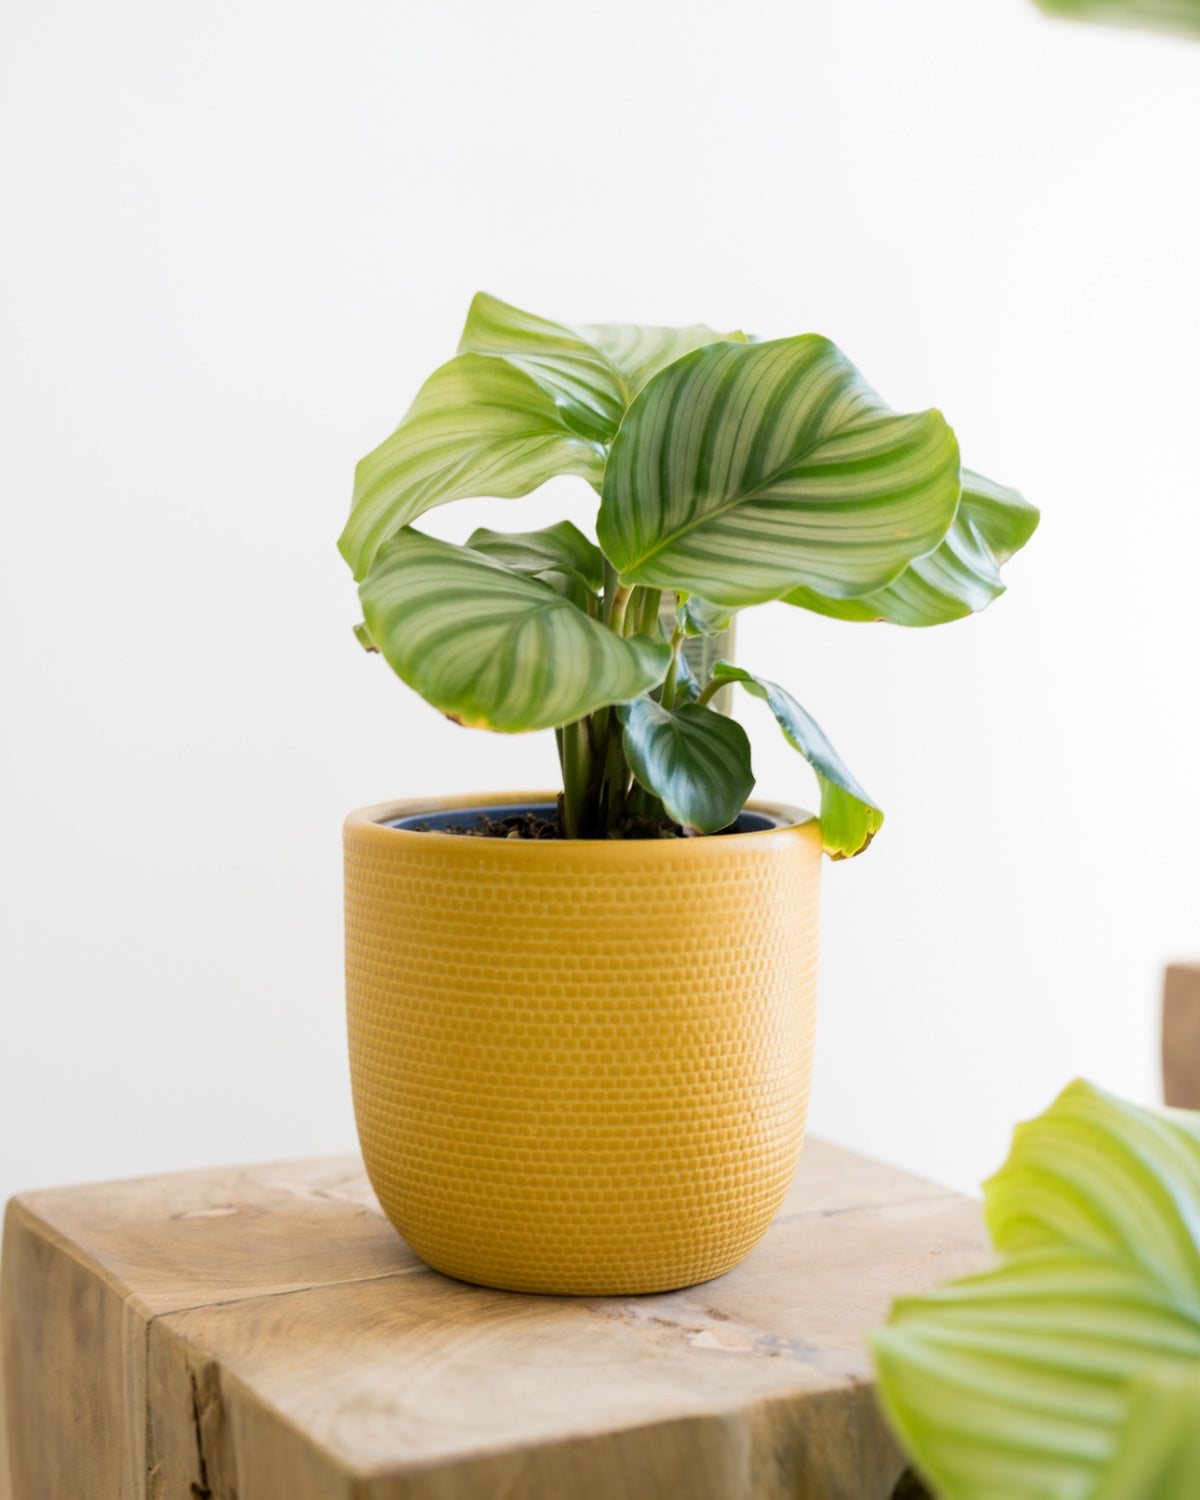 Calathea orbifolia - Small